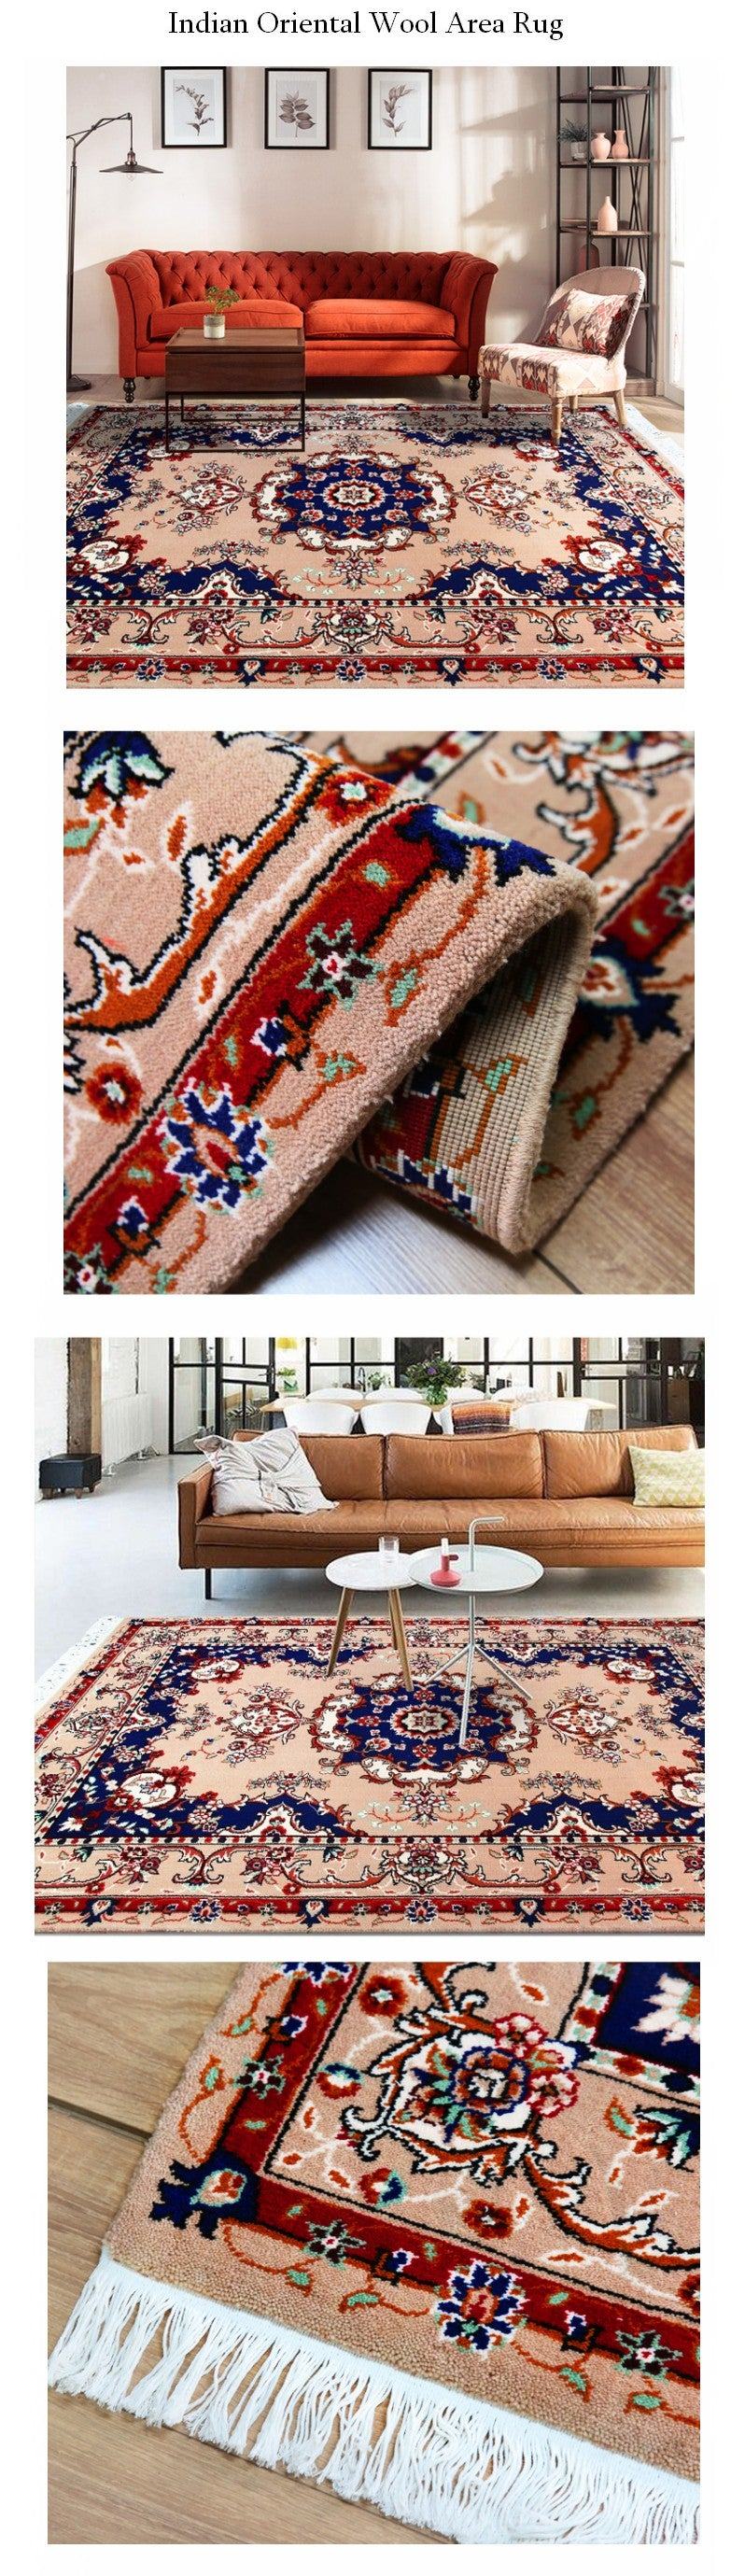 Bohemia Oriental Area Rug, New Zealand Wool Woven Floor Carpet and Rugs